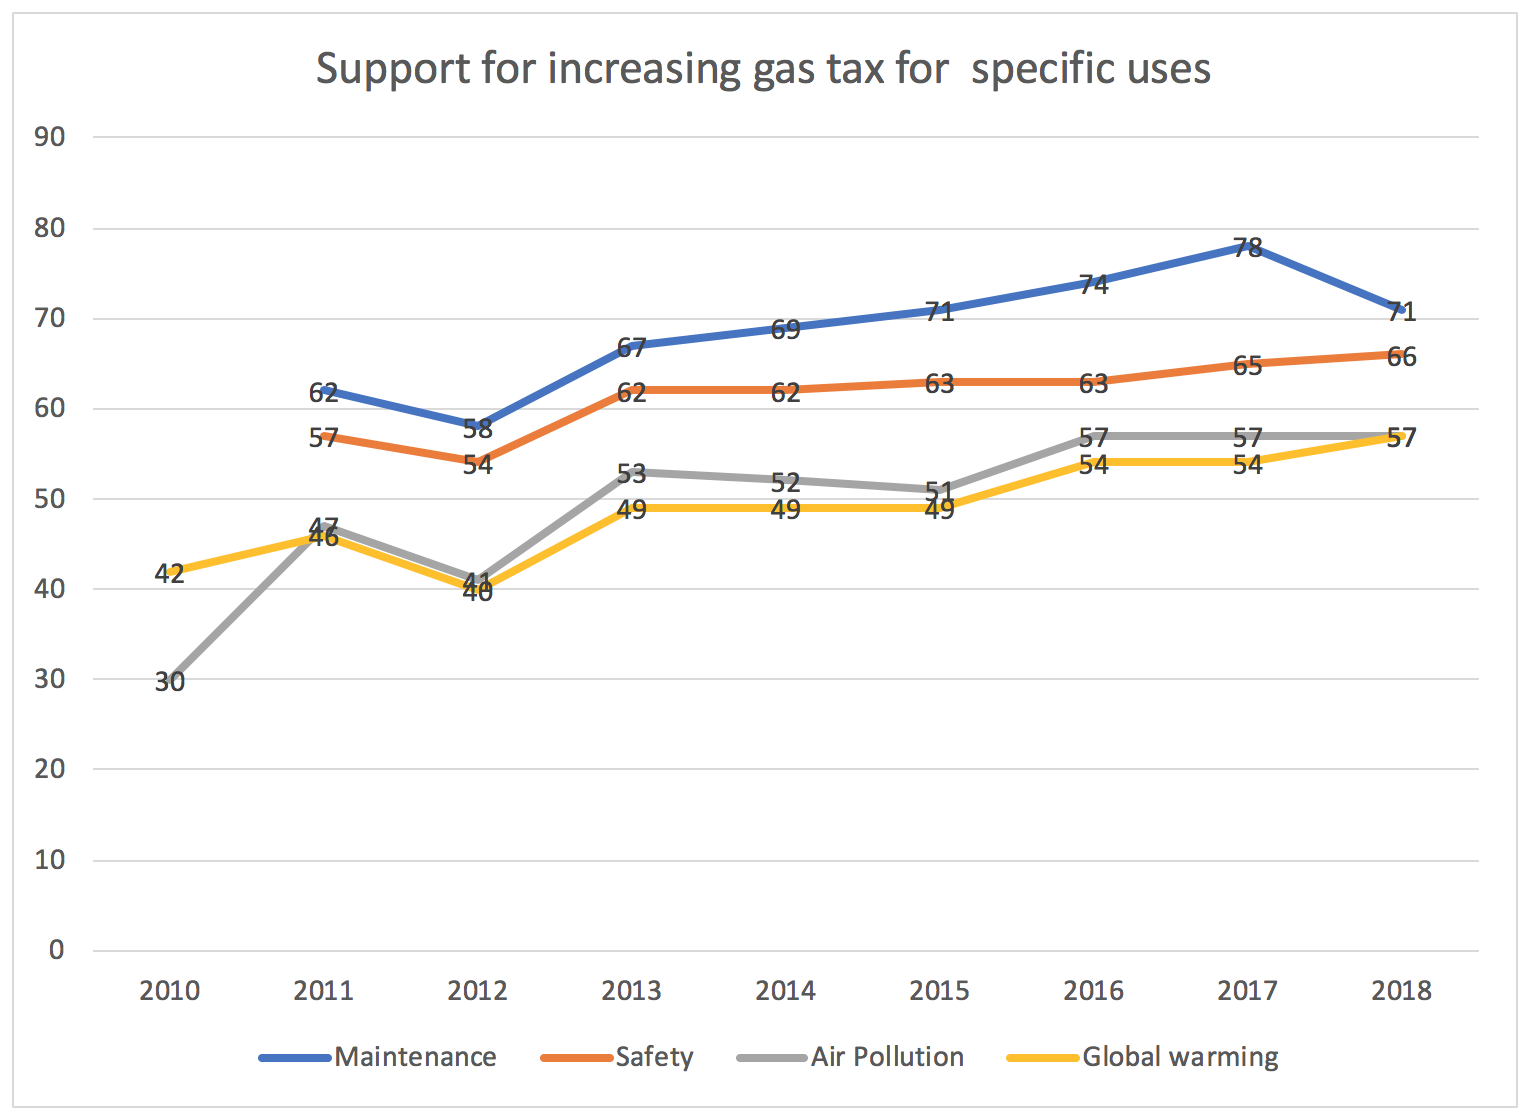 Support for Gas Tax Increase